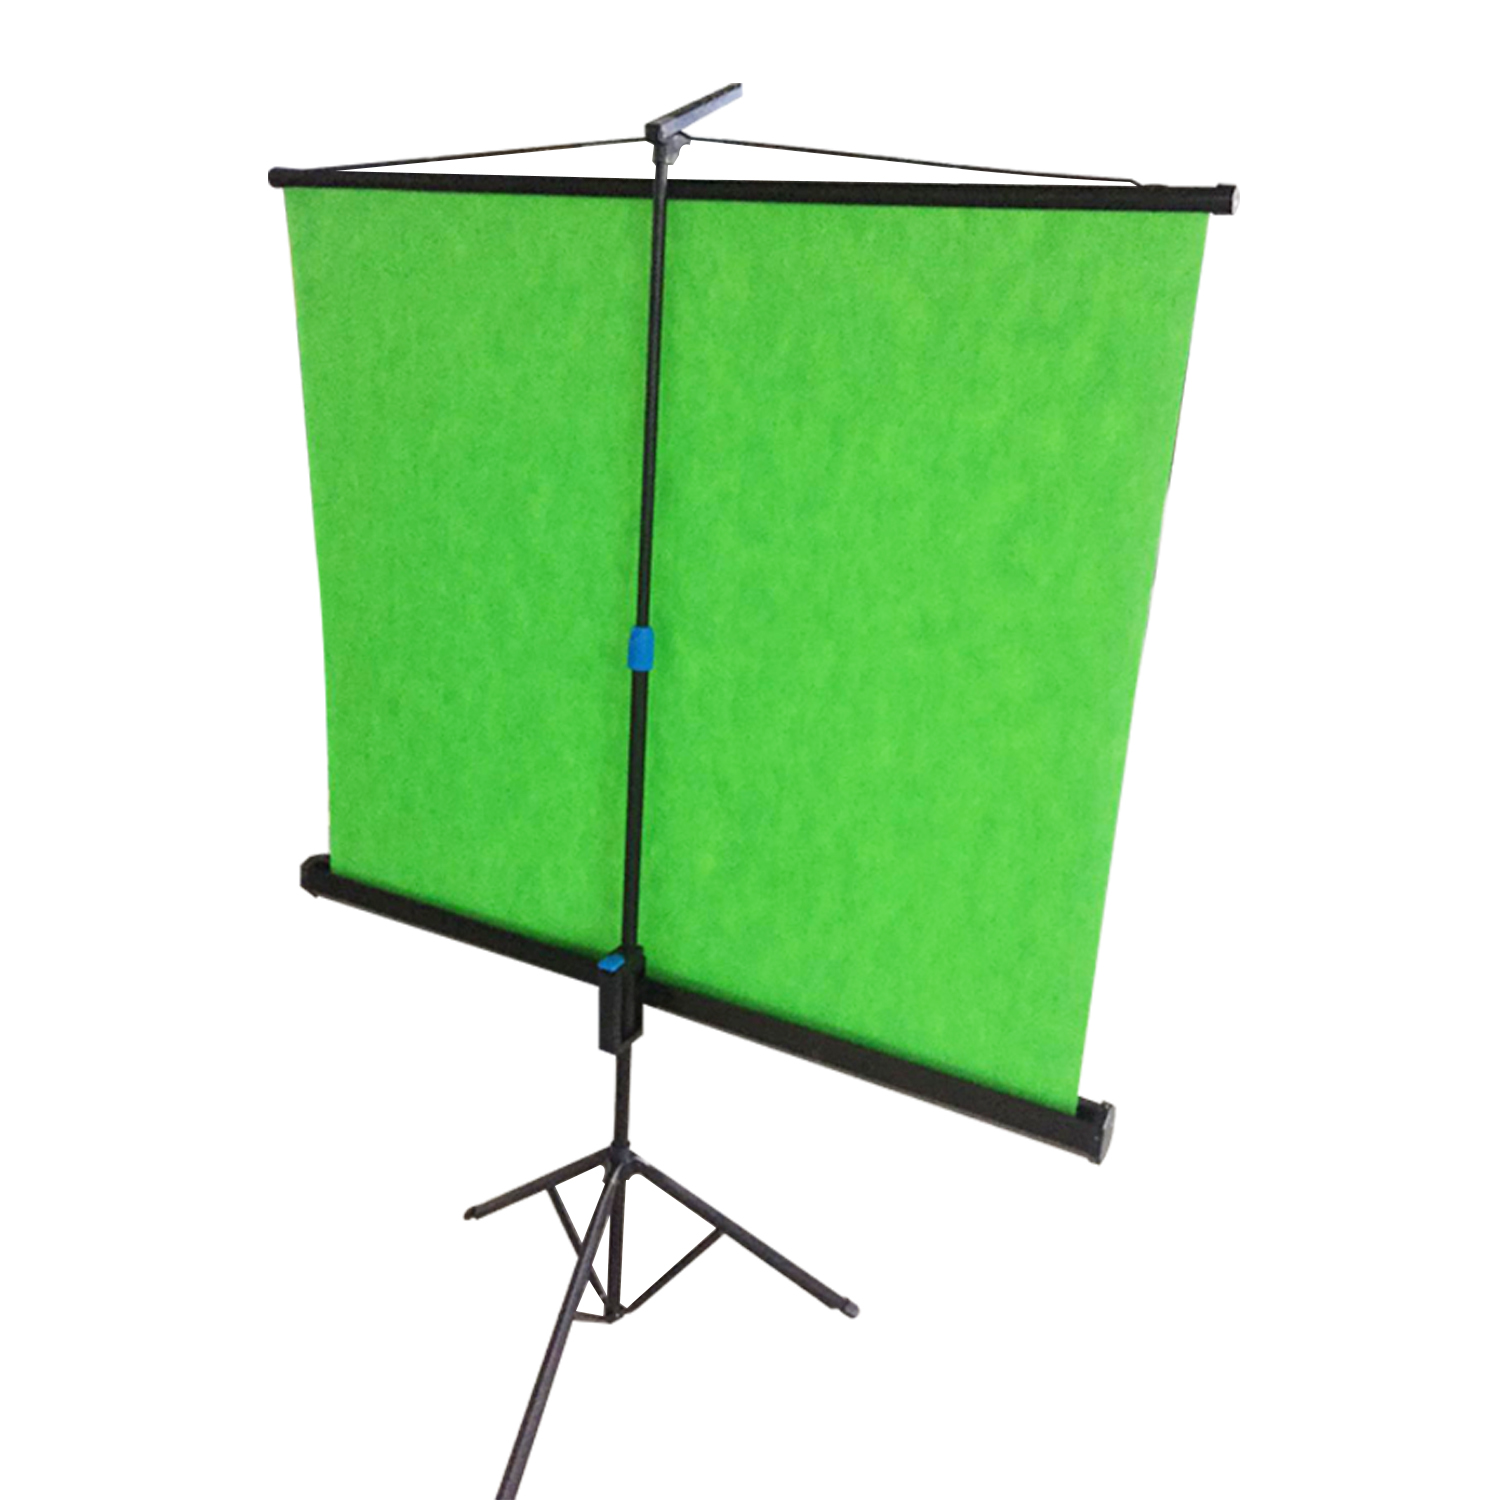 factory professional indoor photo background portable tripod fast fold green screen tripod stand